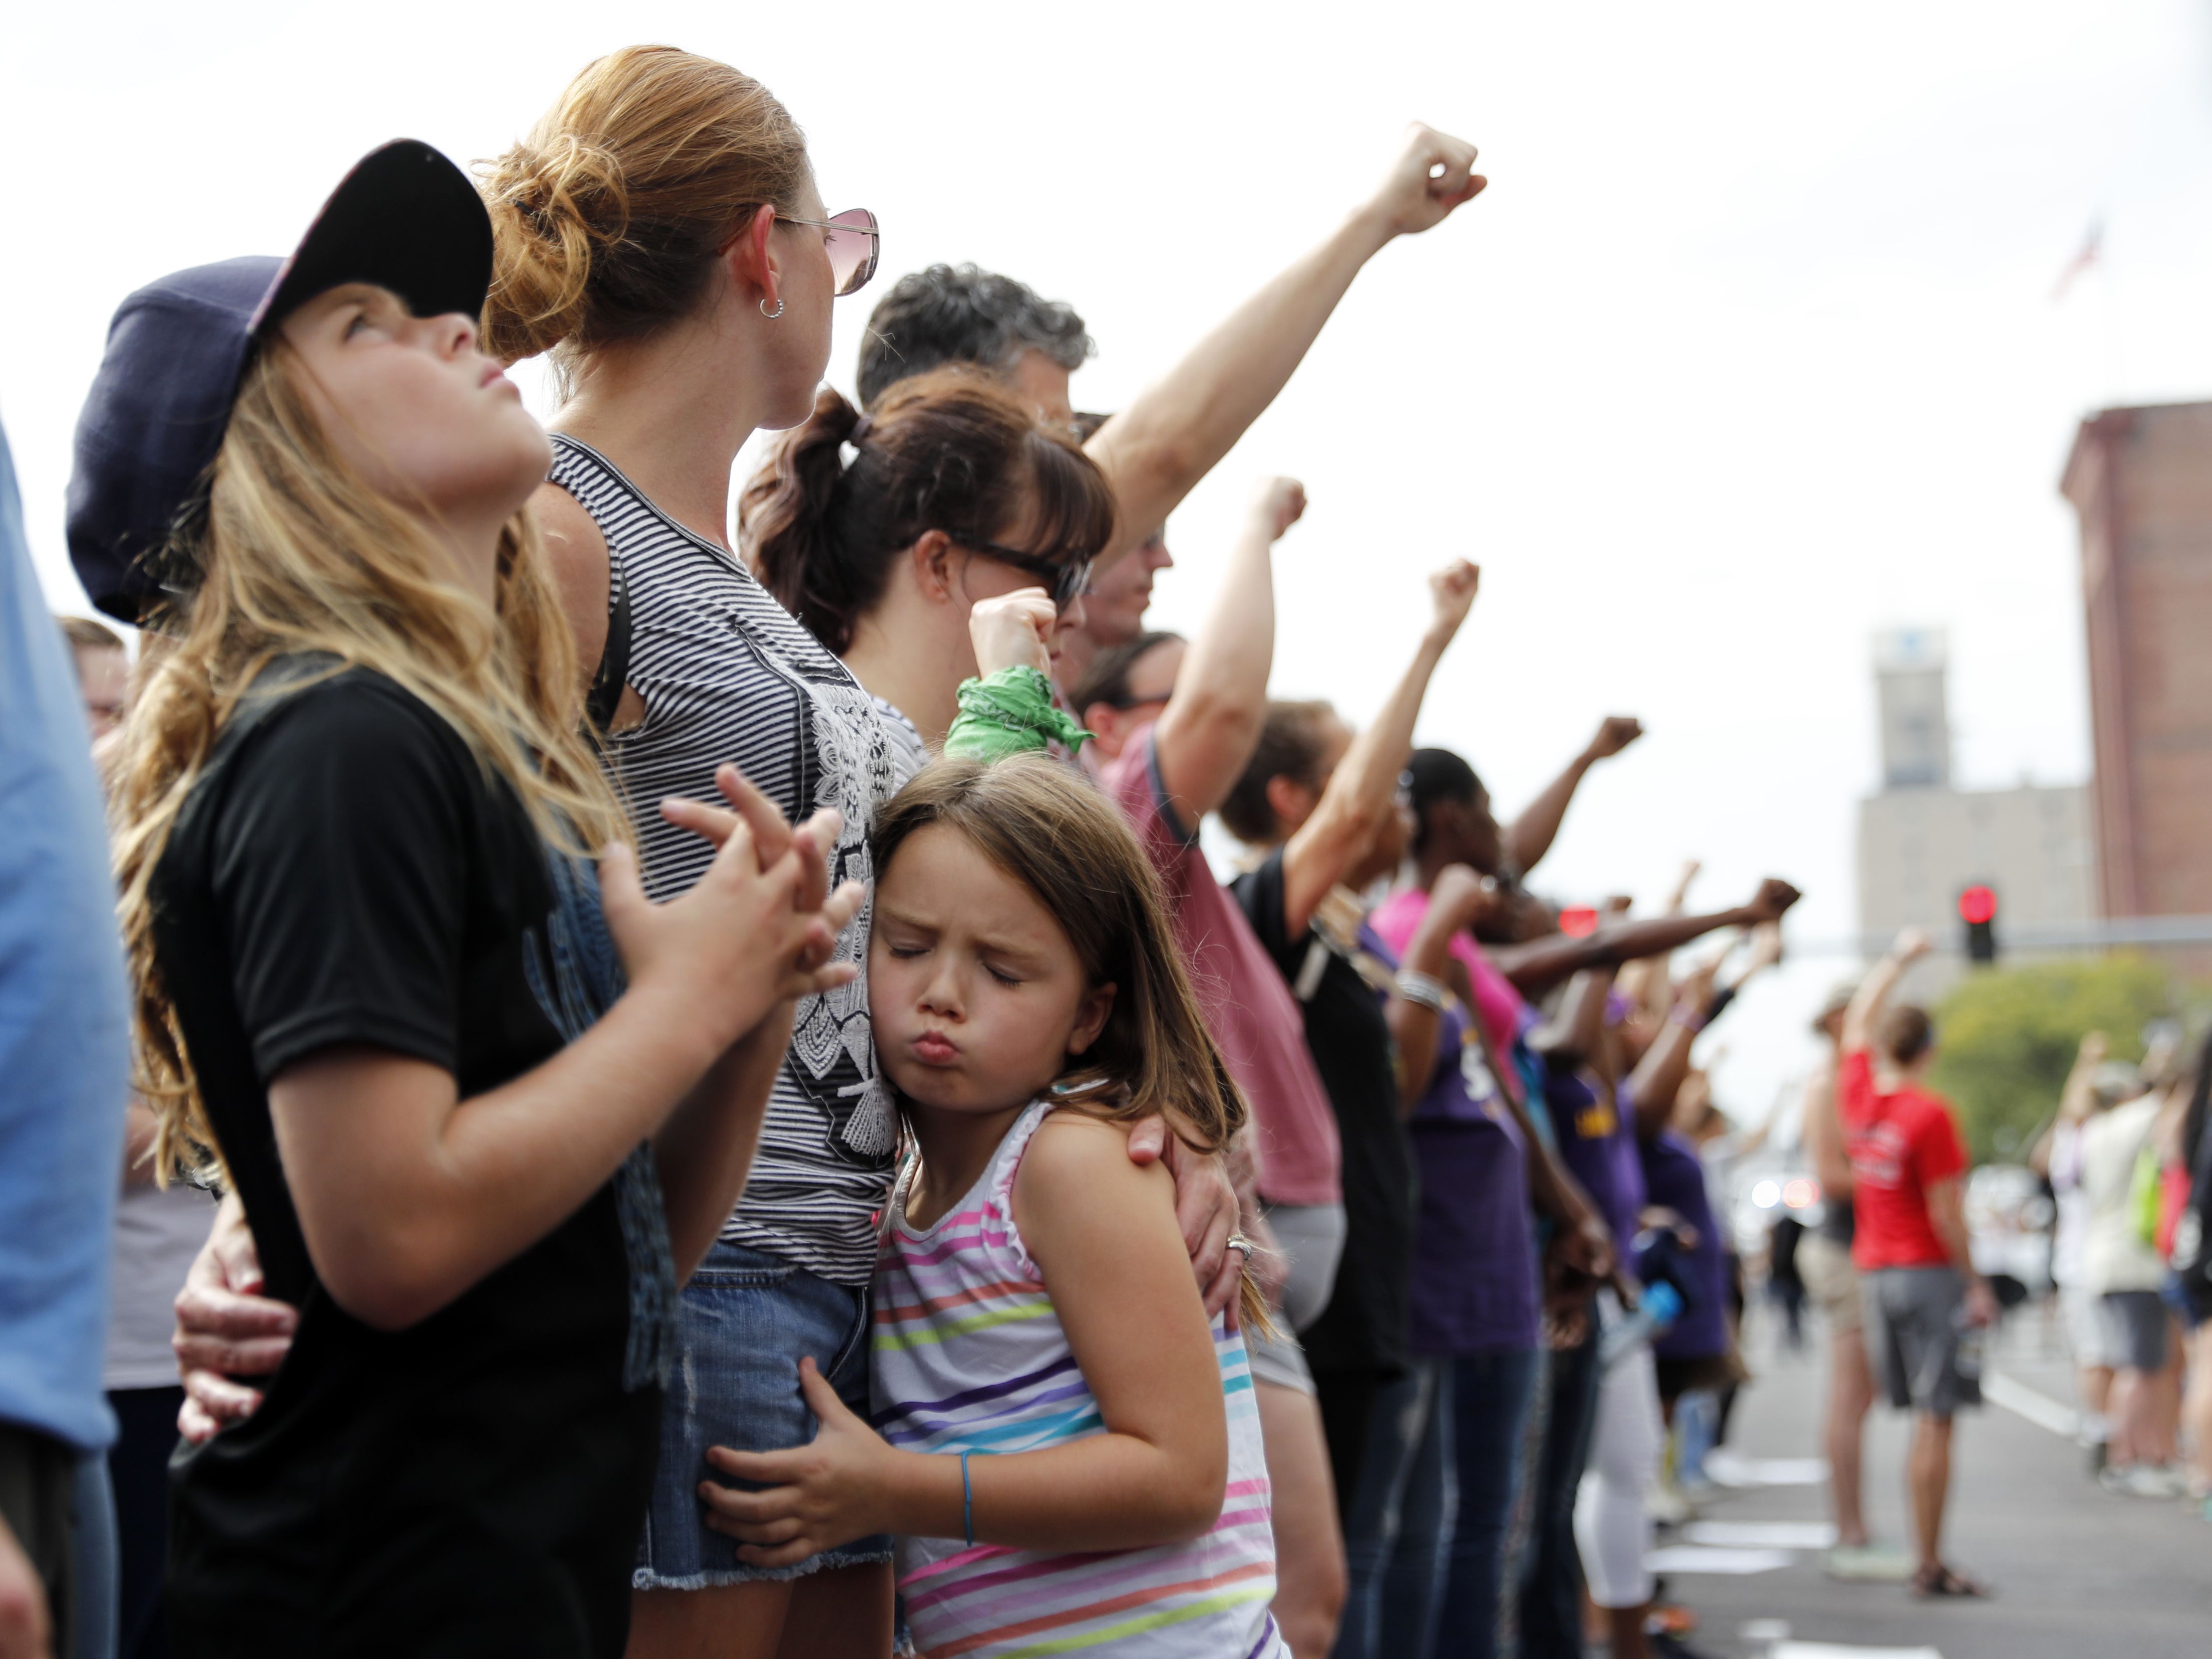 Demonstrations have taken to the streets every day since a white former St. Louis police officer was acquitted Friday in the 2011 killing of a black man. On Saturday, protesters stood silently outside the St. Louis Police Department headquarters. (Jeff Roberson/AP)